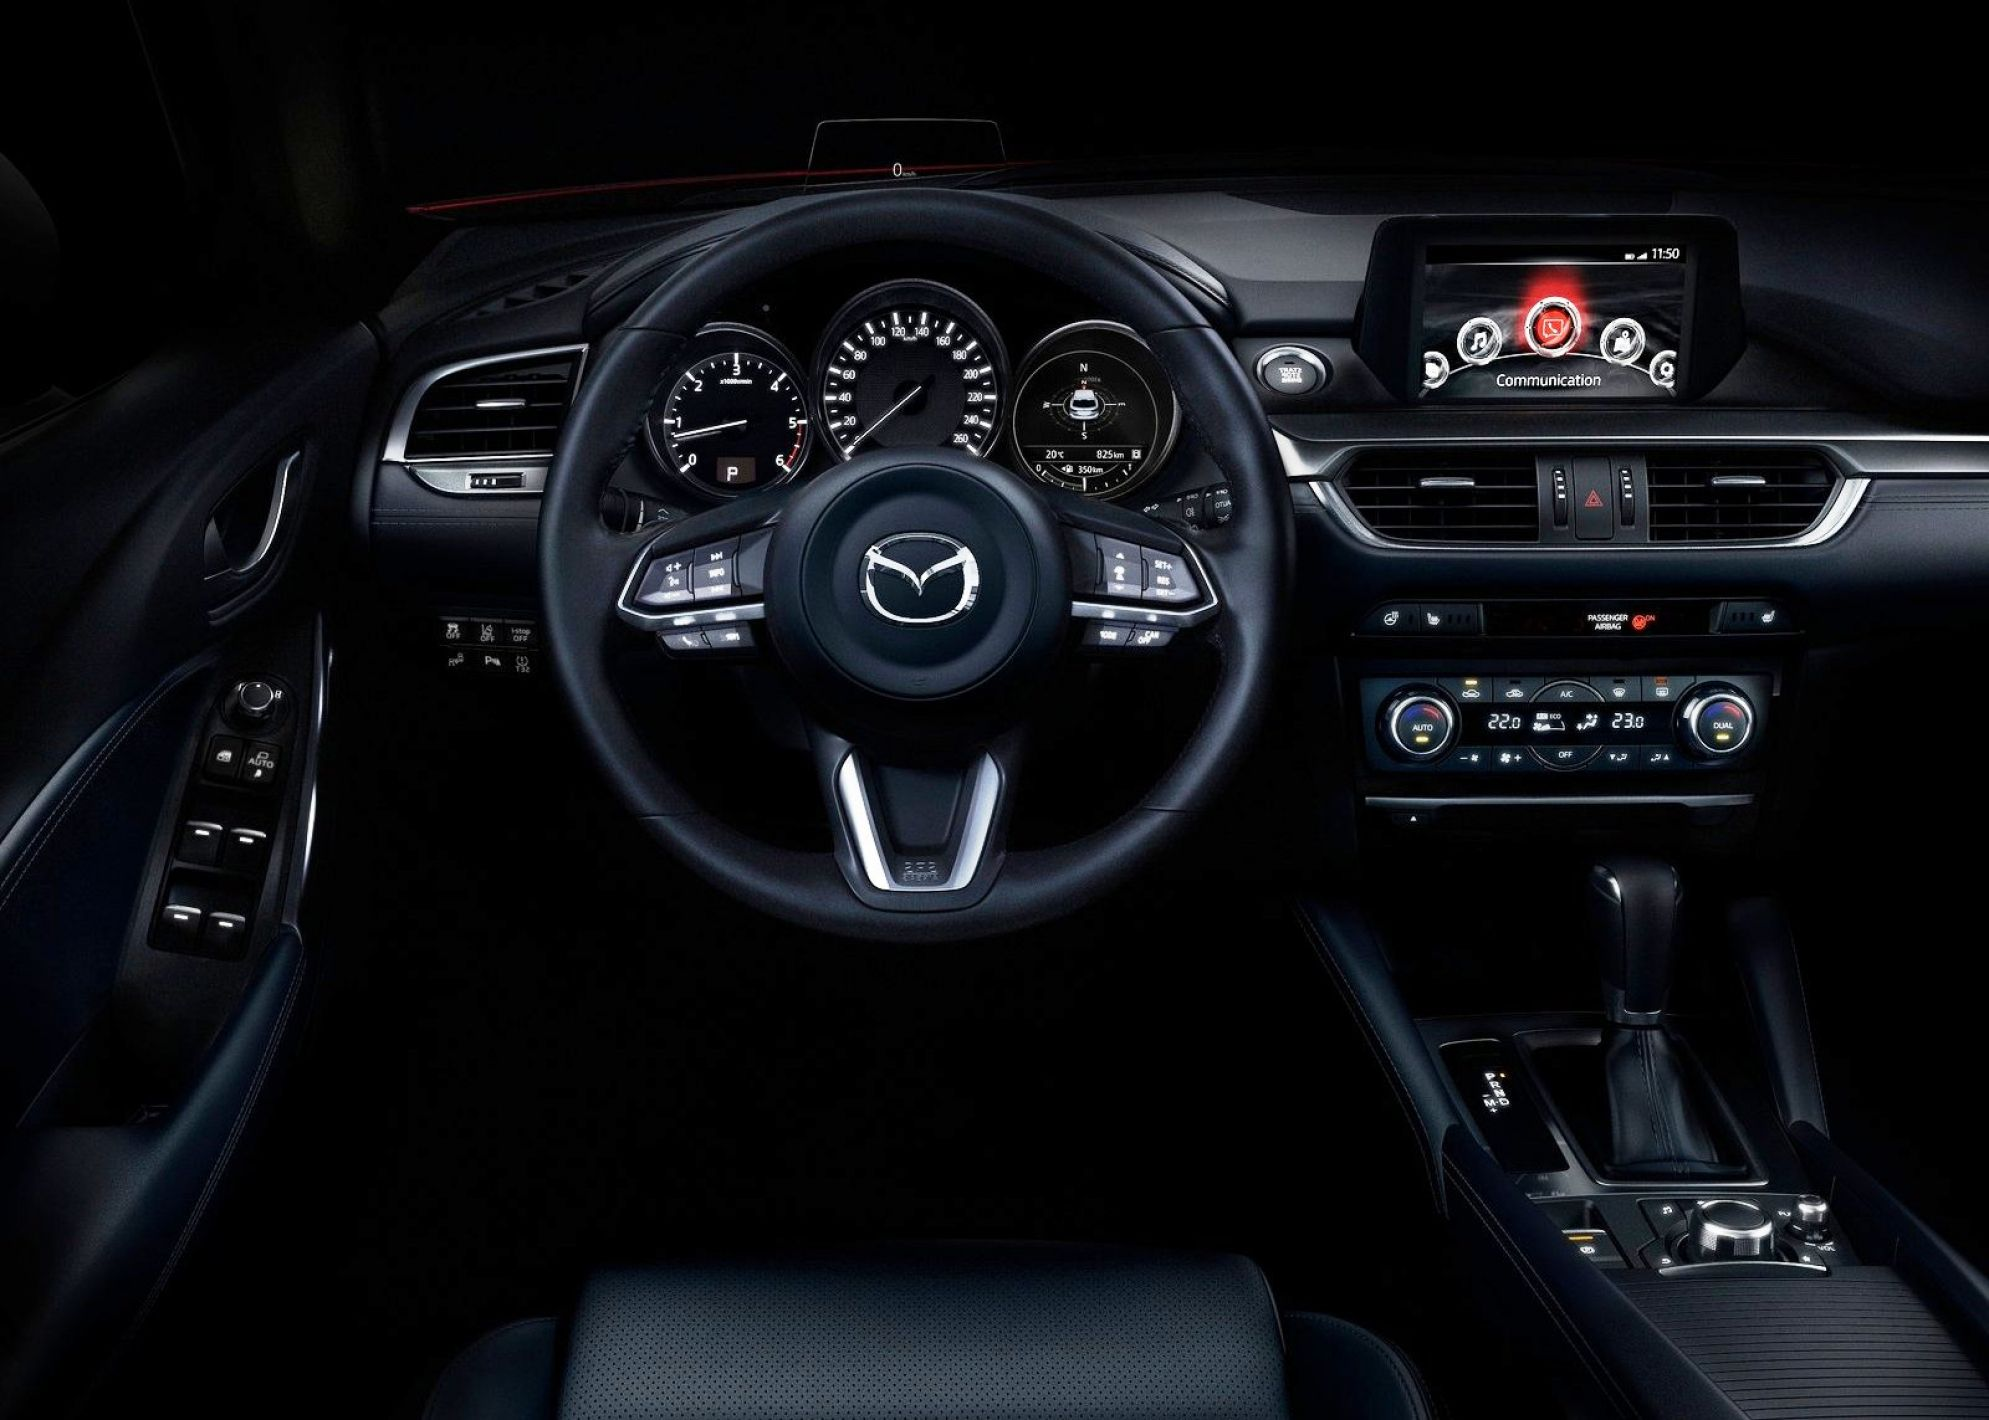 2017 Mazda 6 Dashboard Wallpaper Xe hơi